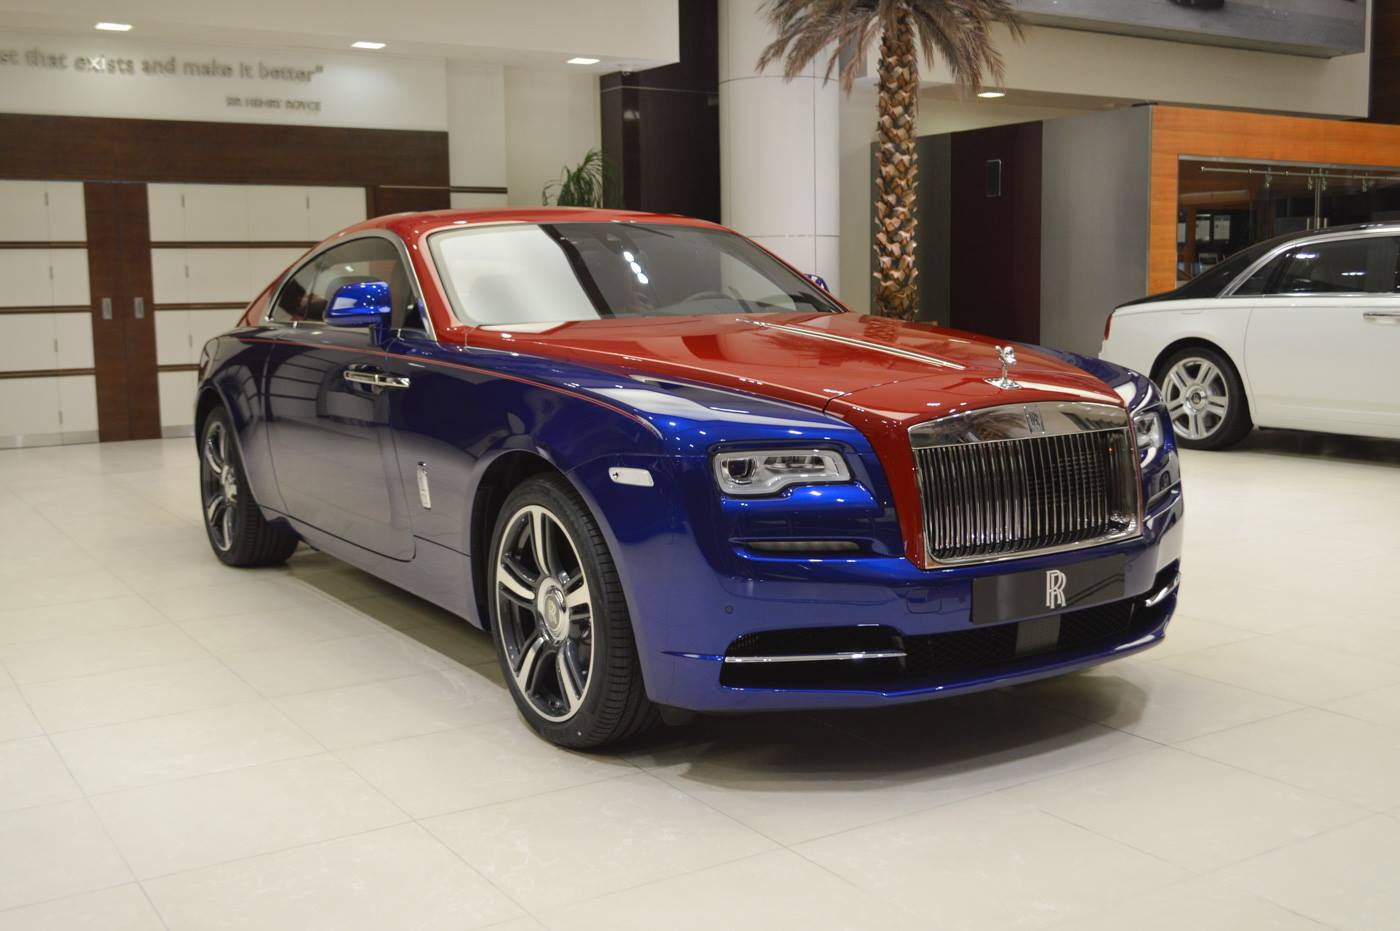 Images of the new rolls royce phantom 2020 price in south africa